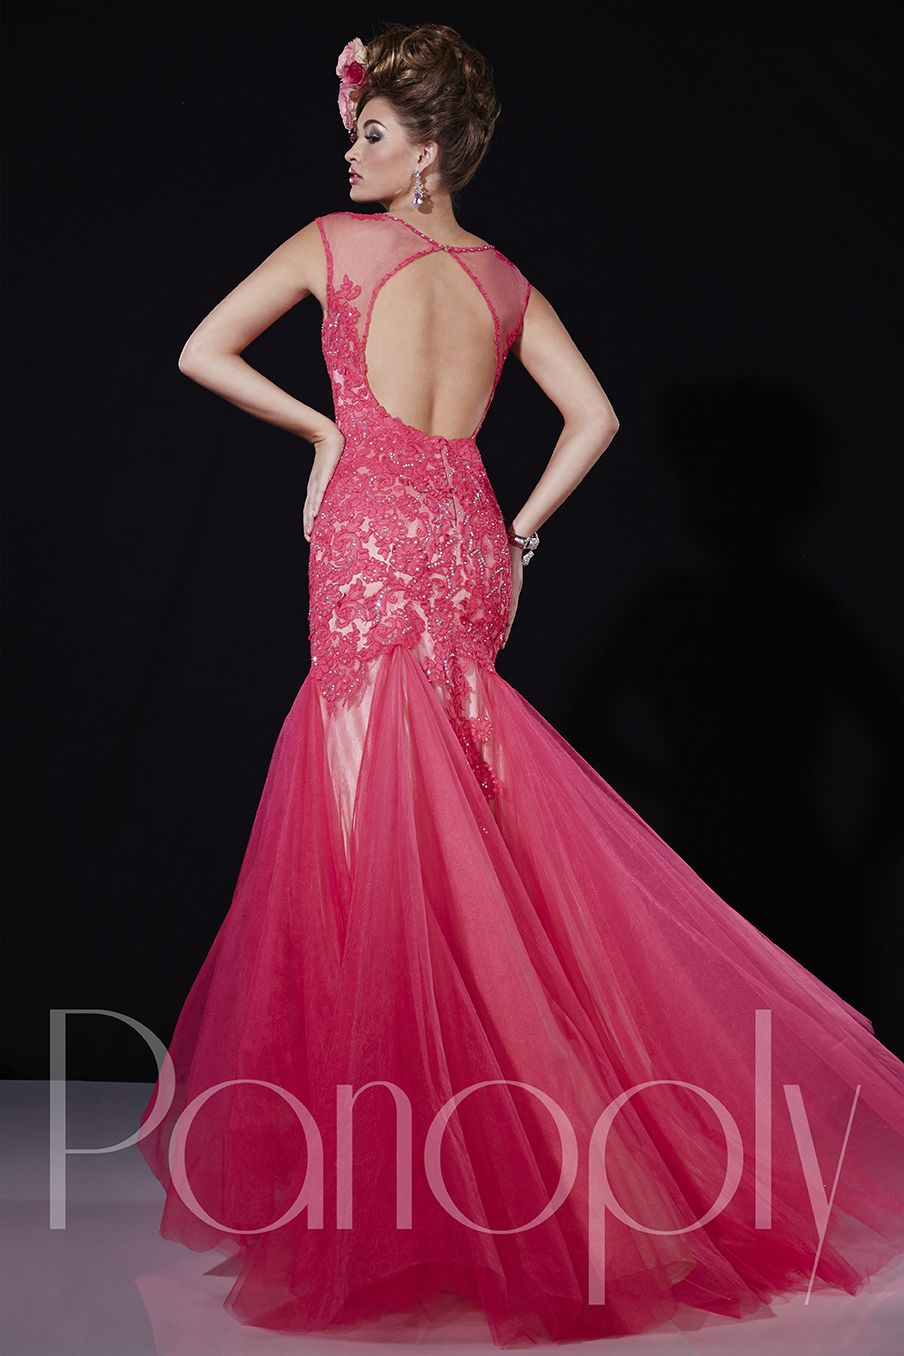 Panoply Style 14709: A compilation of all you favorites, this gown ...